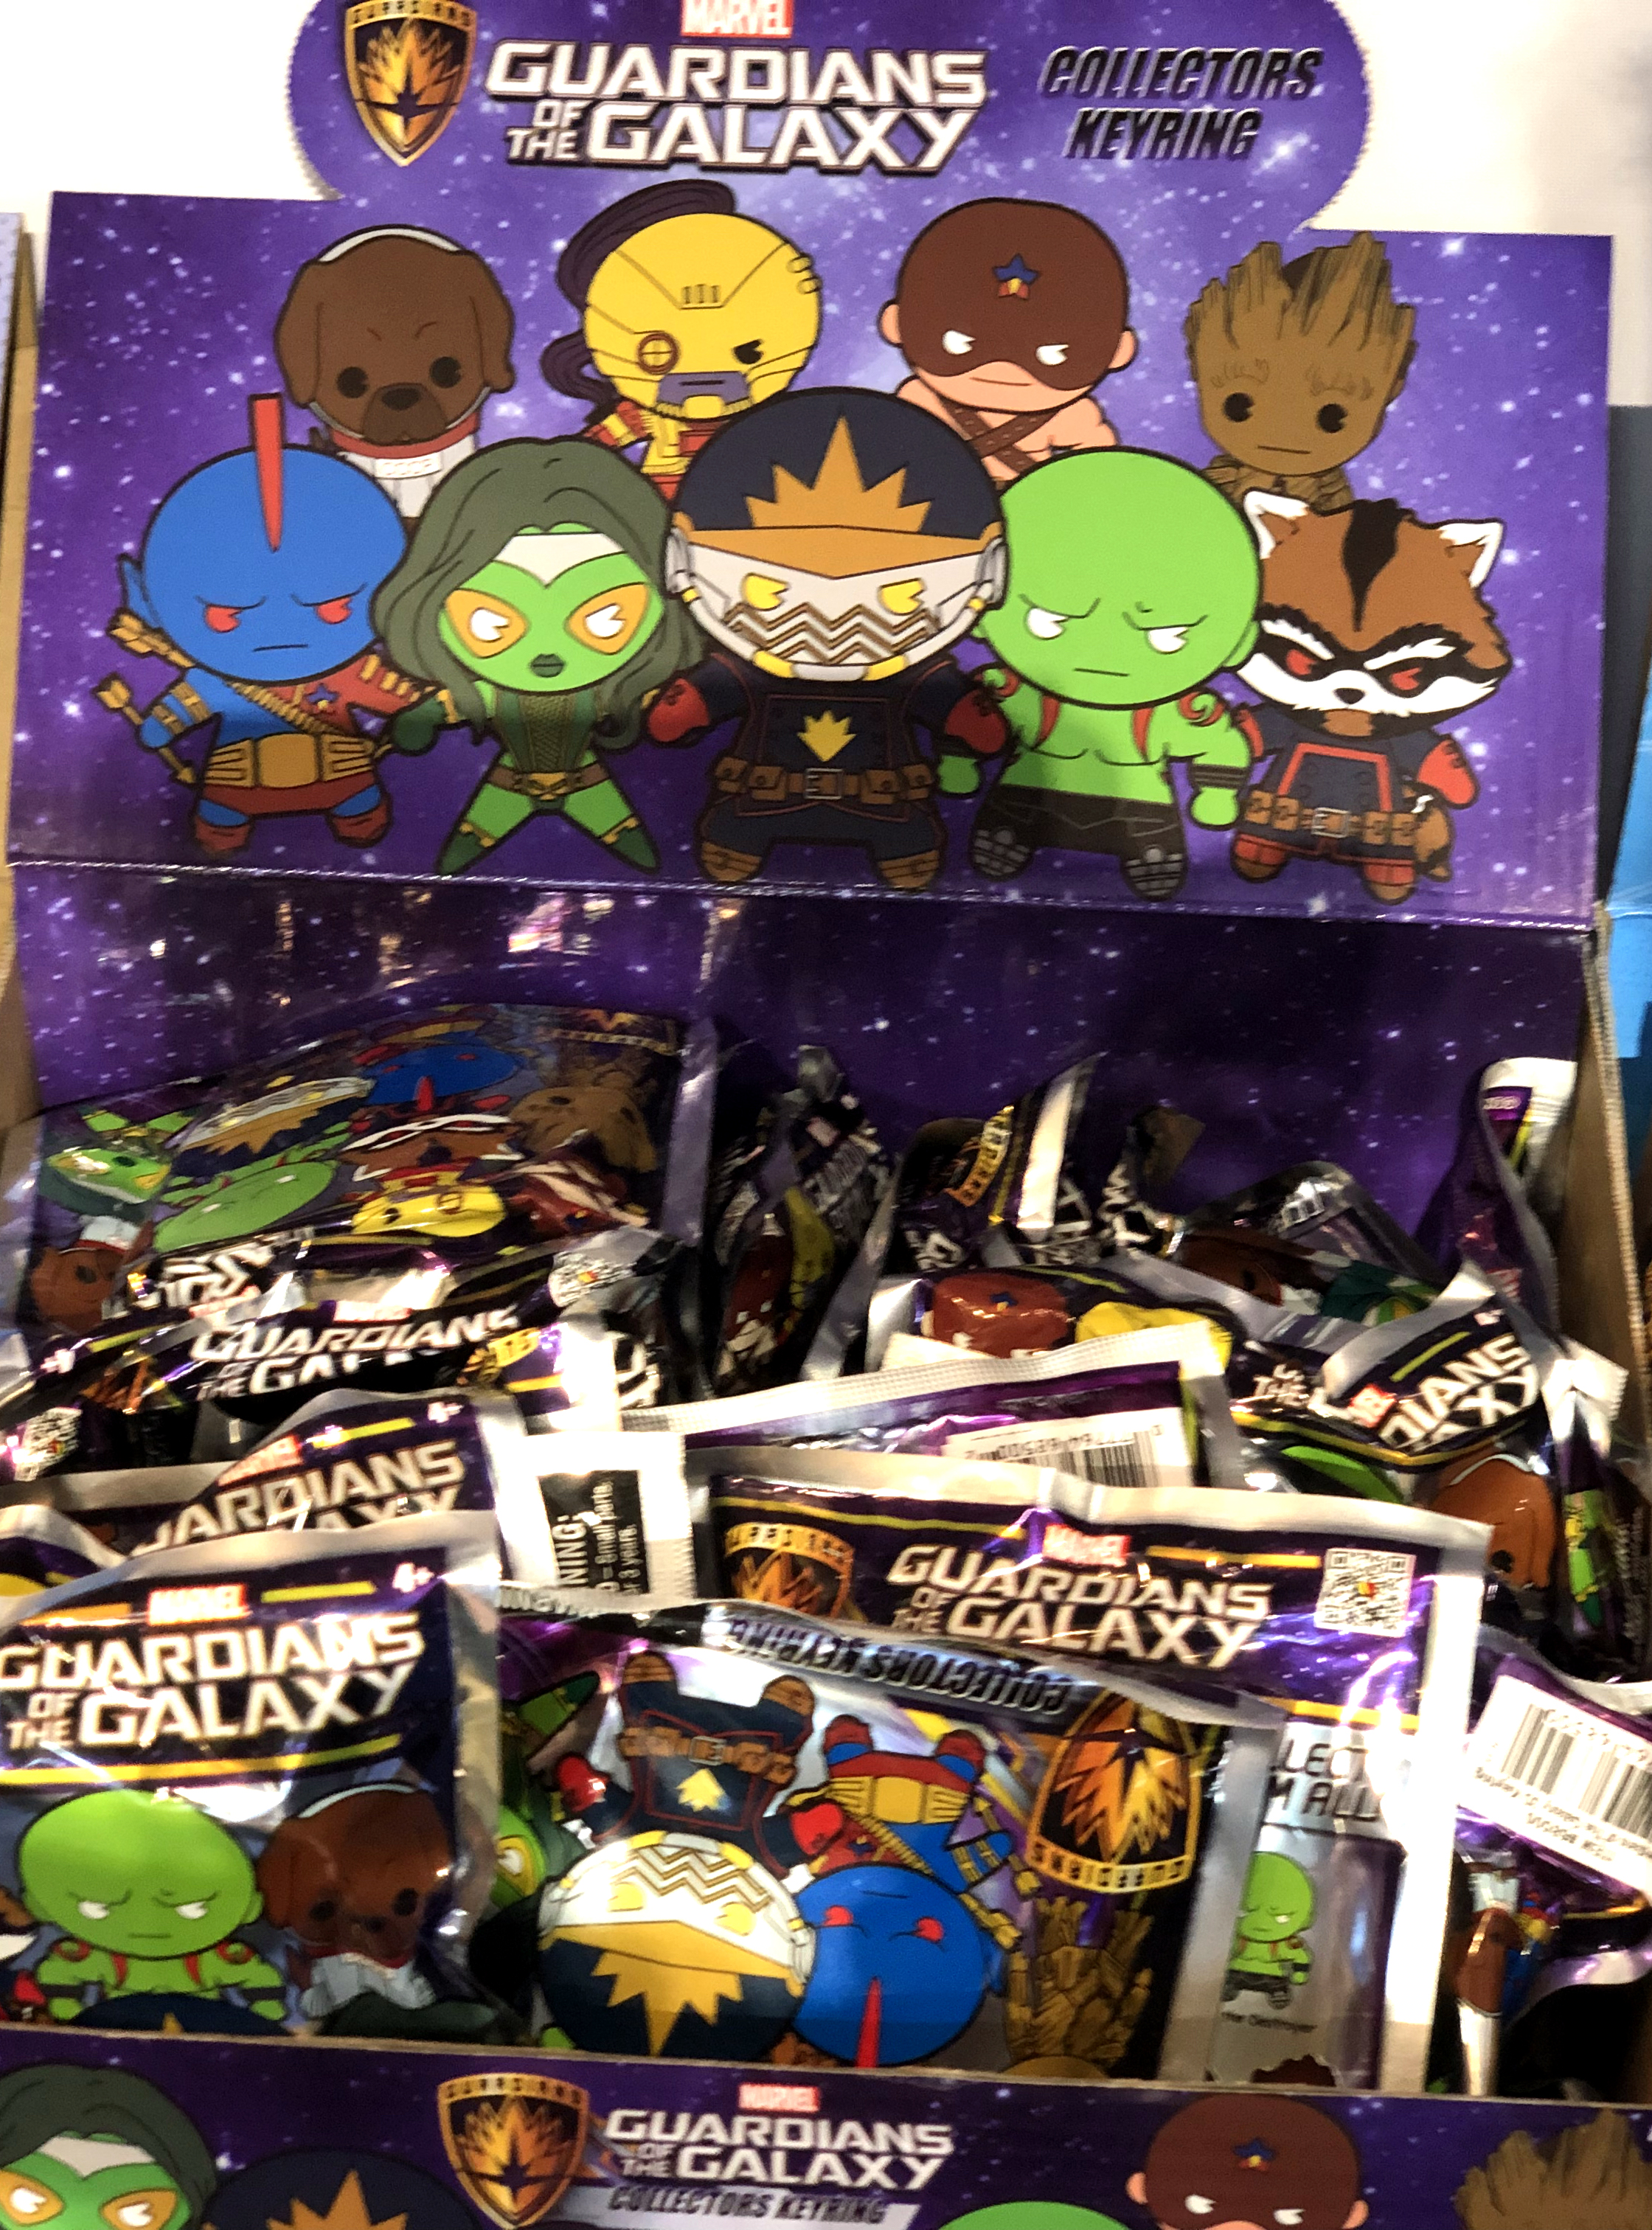 2018 Toy Fair Monogram International Guardians of the Galaxy Collectors Keyrings 01